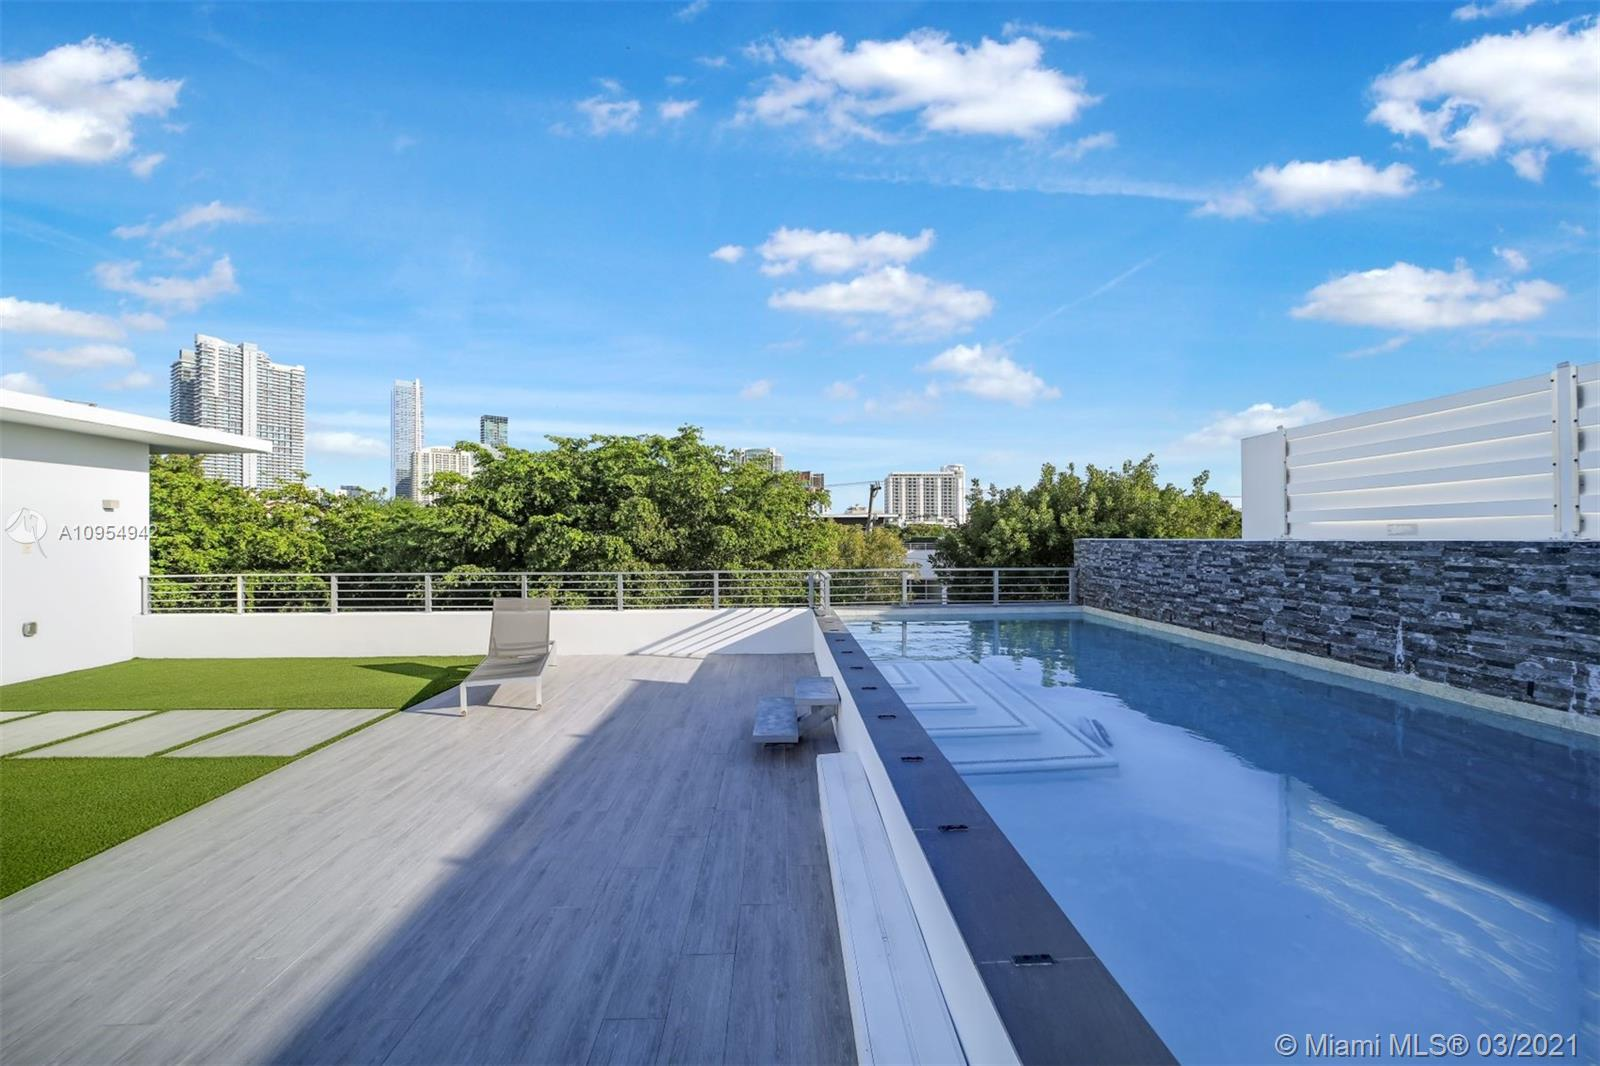 Brickell Broadways Villas just built in the Brickell Roads neighborhood. 4/4 plus garage and private roof top pool with stunning views of Brickell Downtown skyline. Ultra modern and open layout which includes large open terrace on second floor. 24 x 48 Porcelain tiles throughout. This new twin home structure is made of full concrete and a concrete slab roof. The windows and doors are hurricane impact from CGI. Modern gates add security, privacy and elegance. Grand entrance with beautiful chandelier and foyer. Perfect for executives and entertaining. Show and sell this exquisite masterpiece. Built by Sterling Developers, LLC.